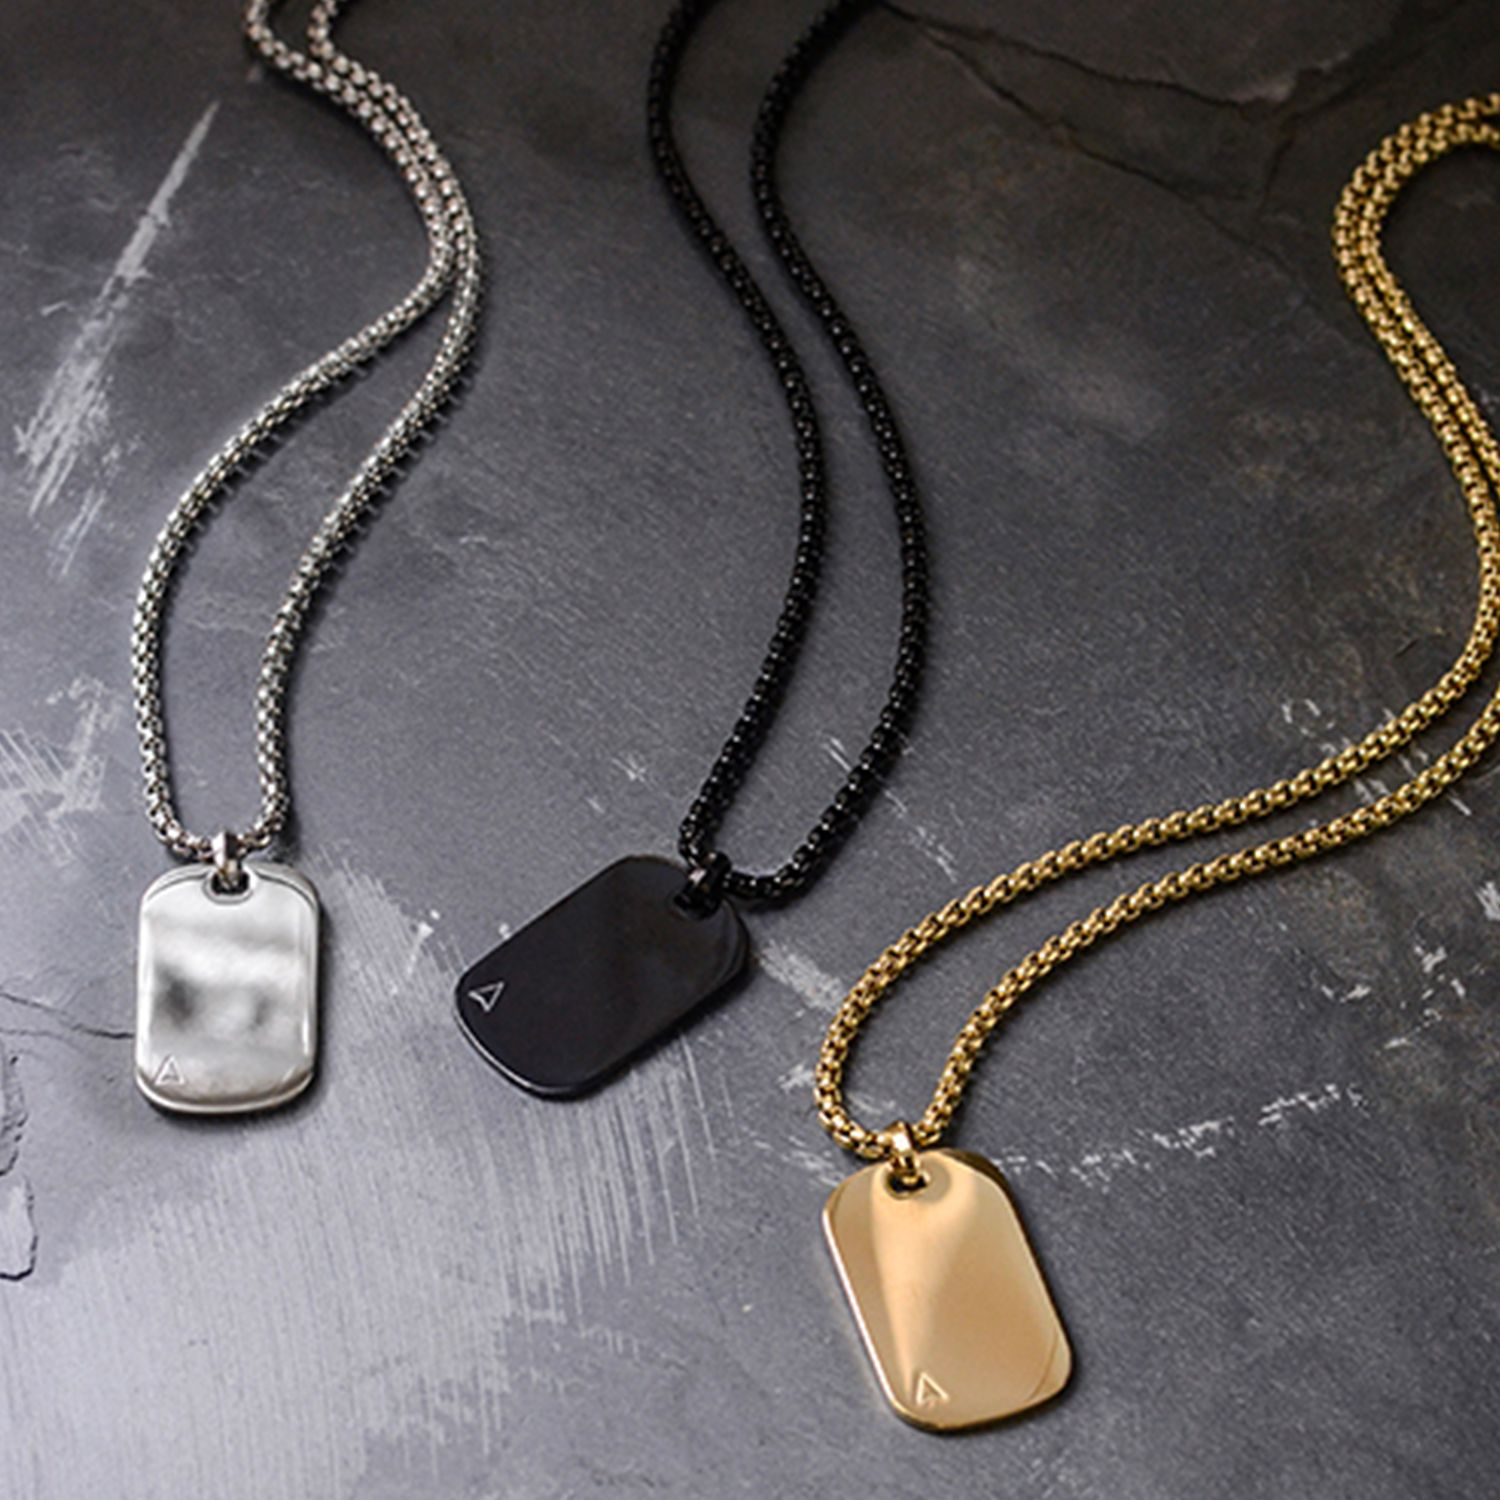 1cec67b2c06a2 The ID Tag Necklace is a contemporary jewellery piece that quietly ...